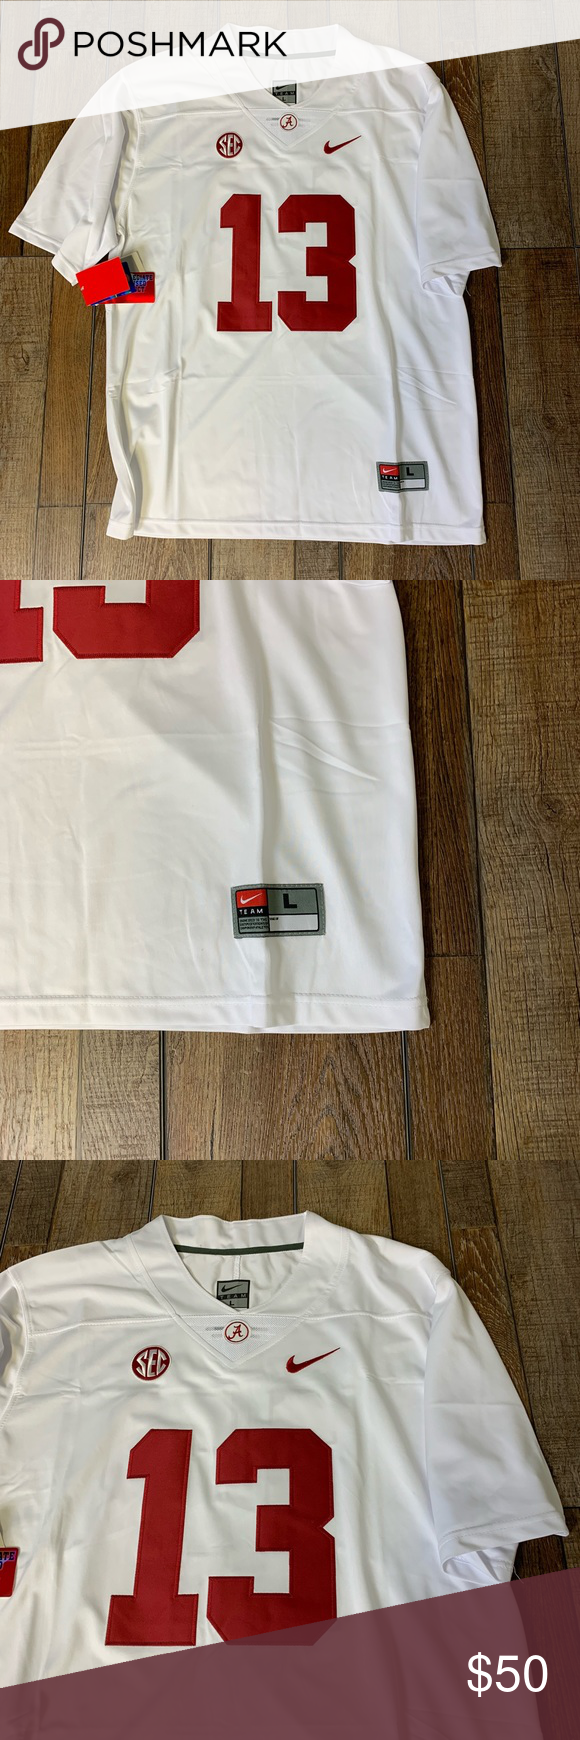 NWT Tua Tagovailoa Alabama College Jersey Large Authentic   Official Nike  Jersey Brand New with Tags ee6f10001